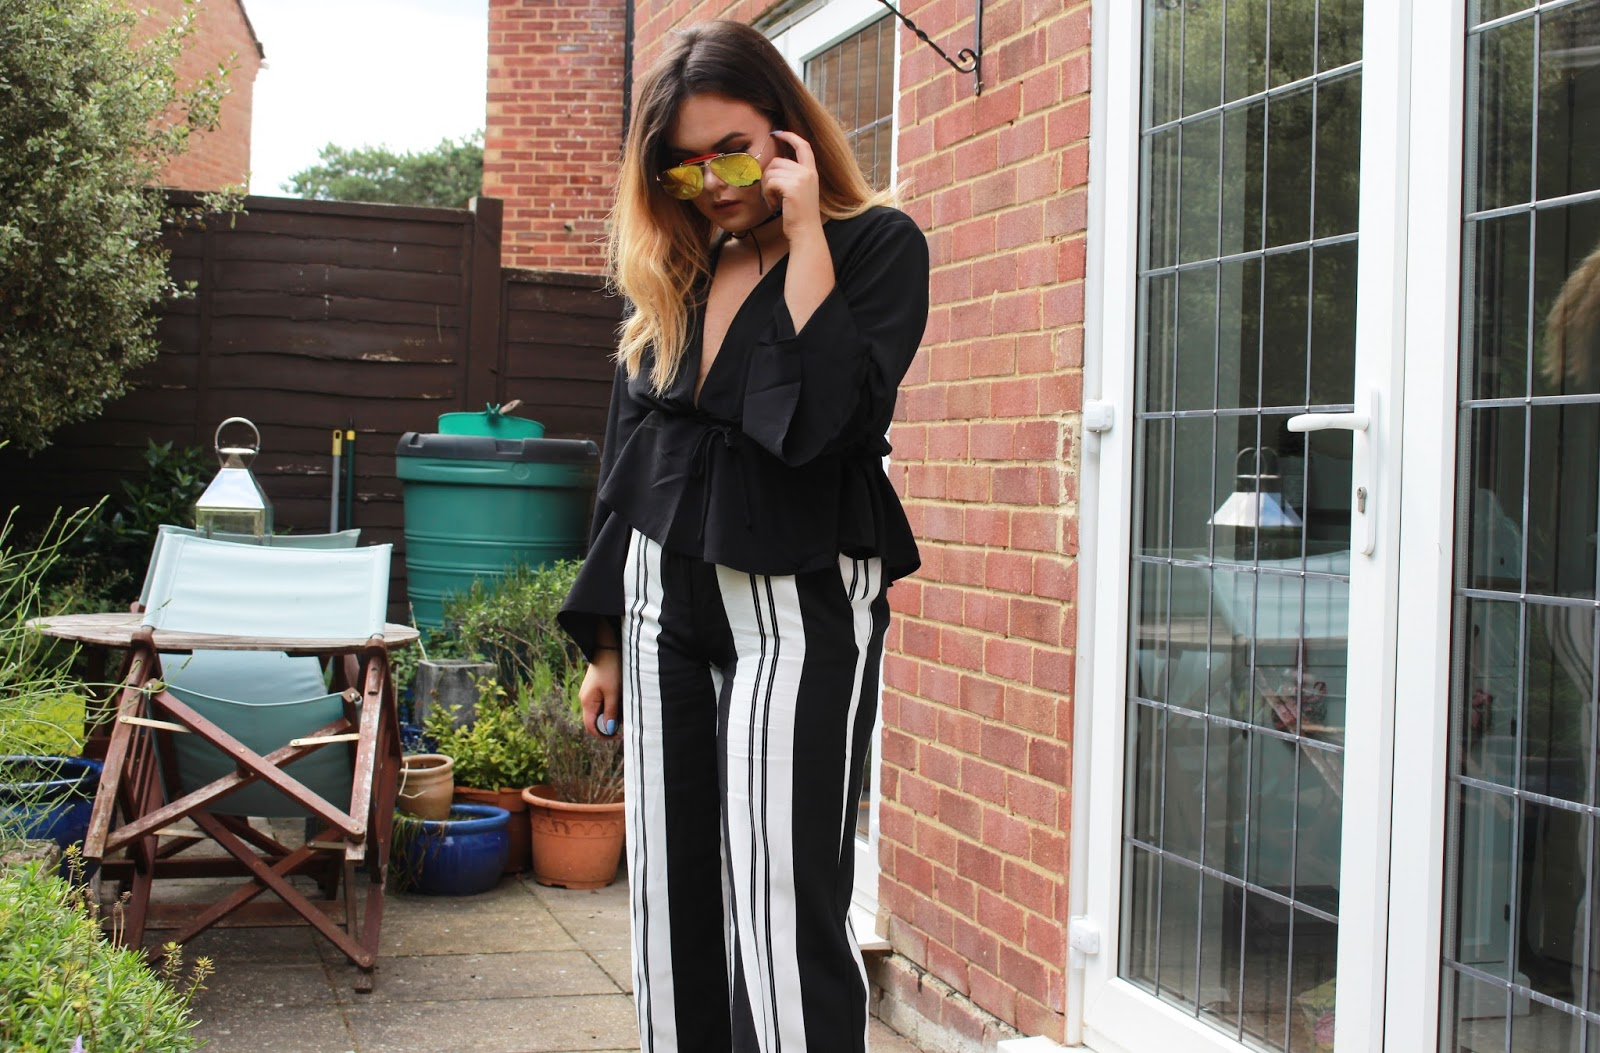 topshop summer 2016, misguided summer, monochrome ootd, fashion blogger uk, outfit inspiration, high street outfit haul 2016